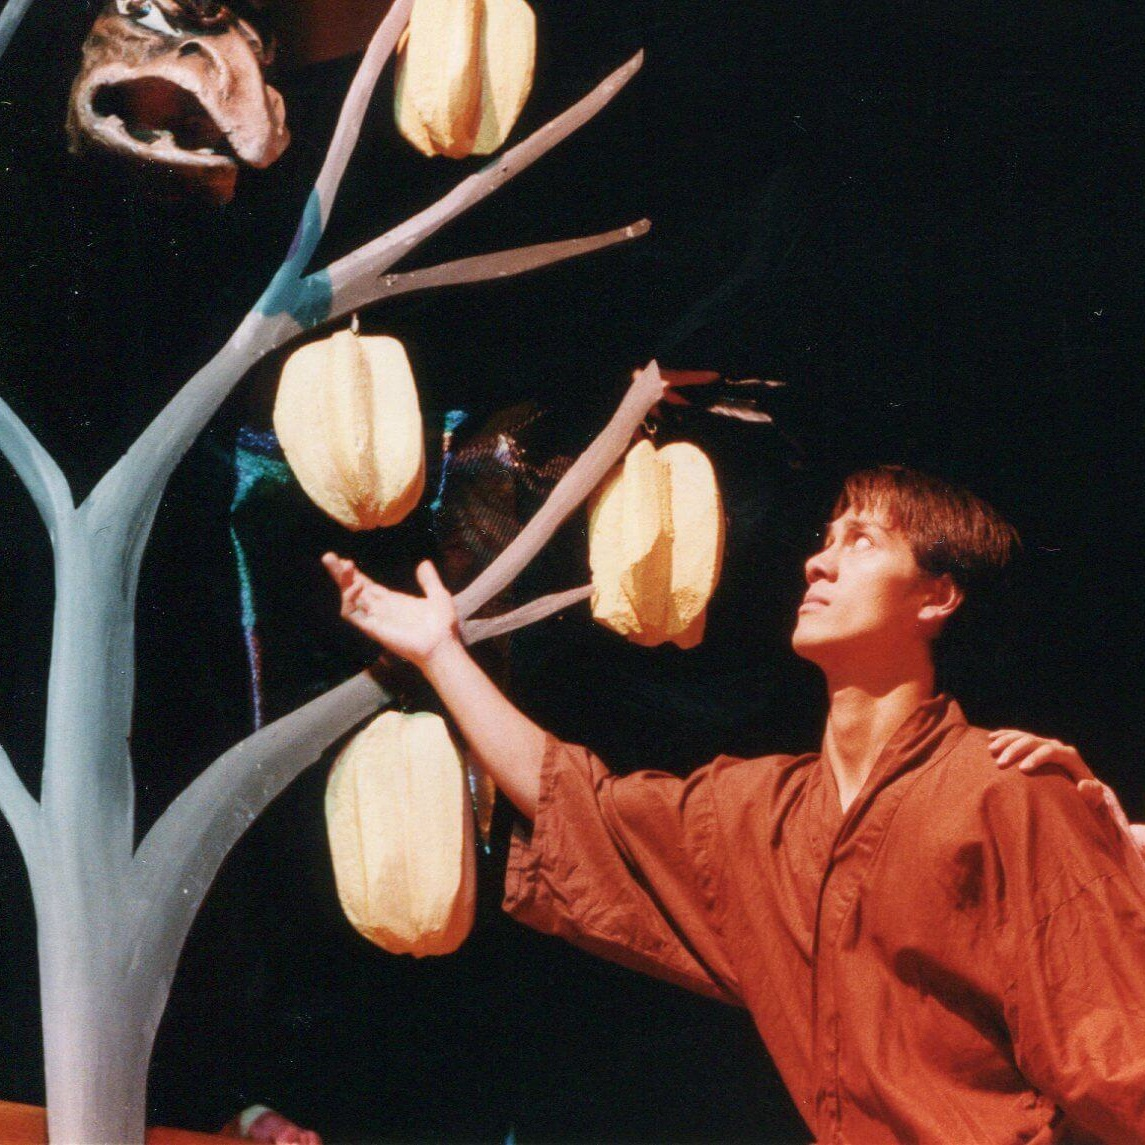 TALES OF THE STARFRUIT TREE - by R.A. SHIOMI & THIEN-BAO THUC PHI directed by R.A. SHIOMIJune 3 - 12, 1999